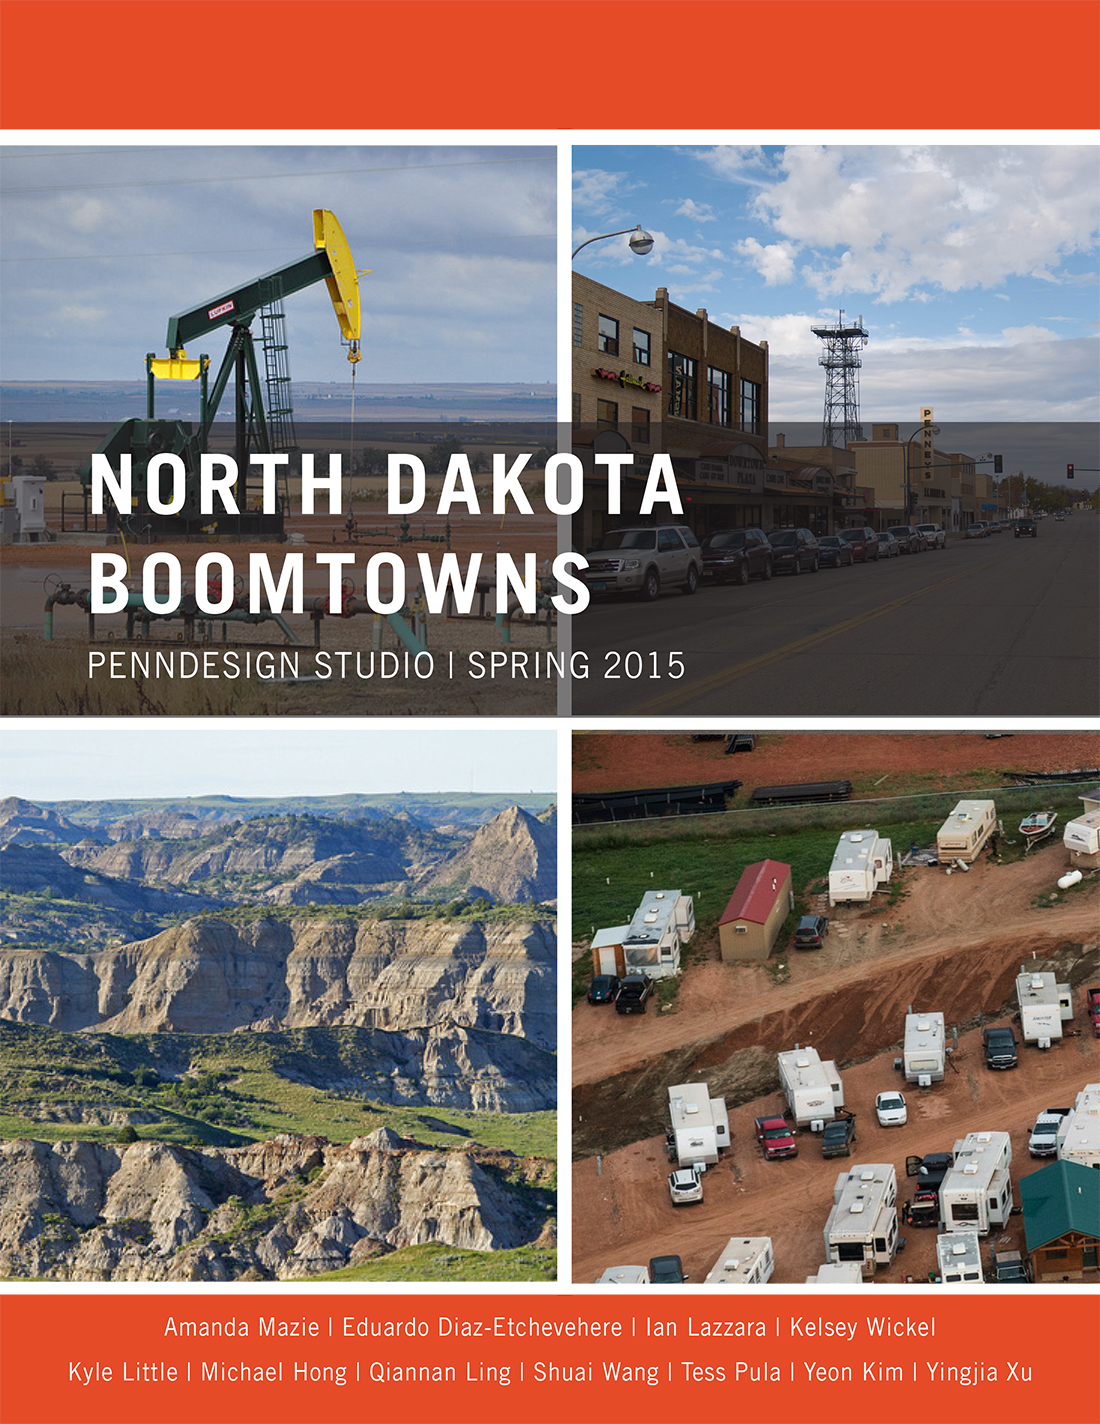 Cover of book, North Dakota Boomtowns, Penndesign Studio | Spring 2015